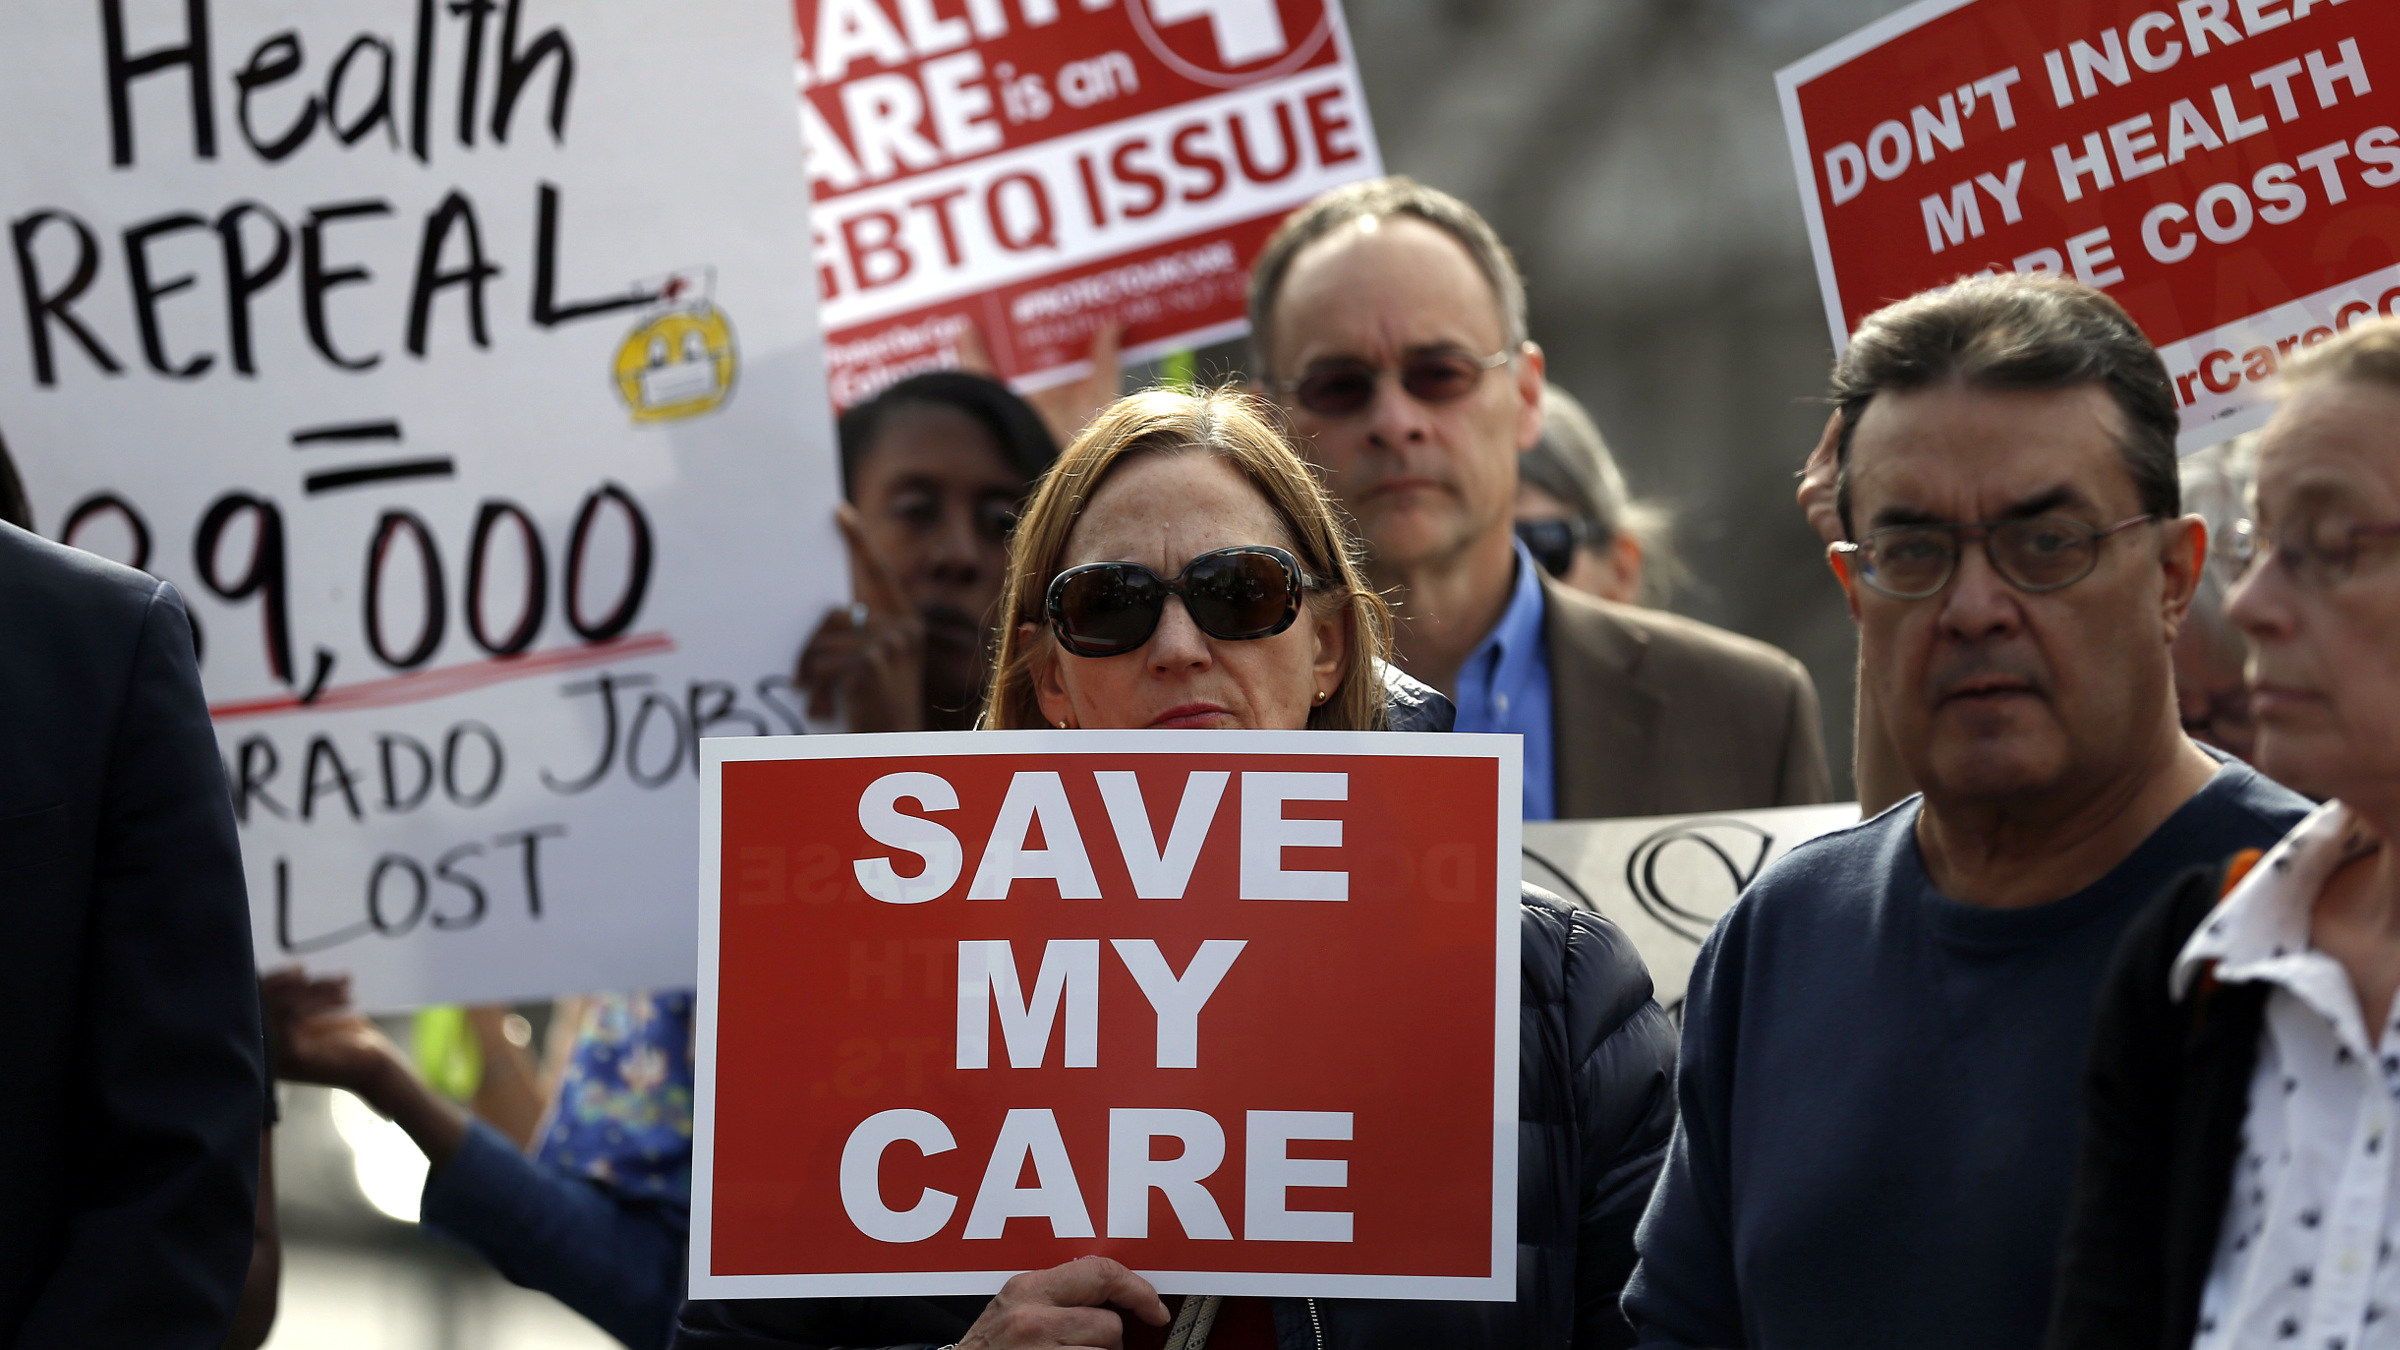 Supporters of the Affordable Care Act who are also opponents of Colorado's GOP-led plan to undo Colorado's state-run insurance exchange gather for a rally organized by the national Save My Care Bus Tour, on the state Capitol steps in Denver, Tuesday, Feb. 7, 2017. A bill being heard in the Senate Finance Committee Tuesday, Feb. 7, 2017 would abolish the state-run health insurance exchange. (